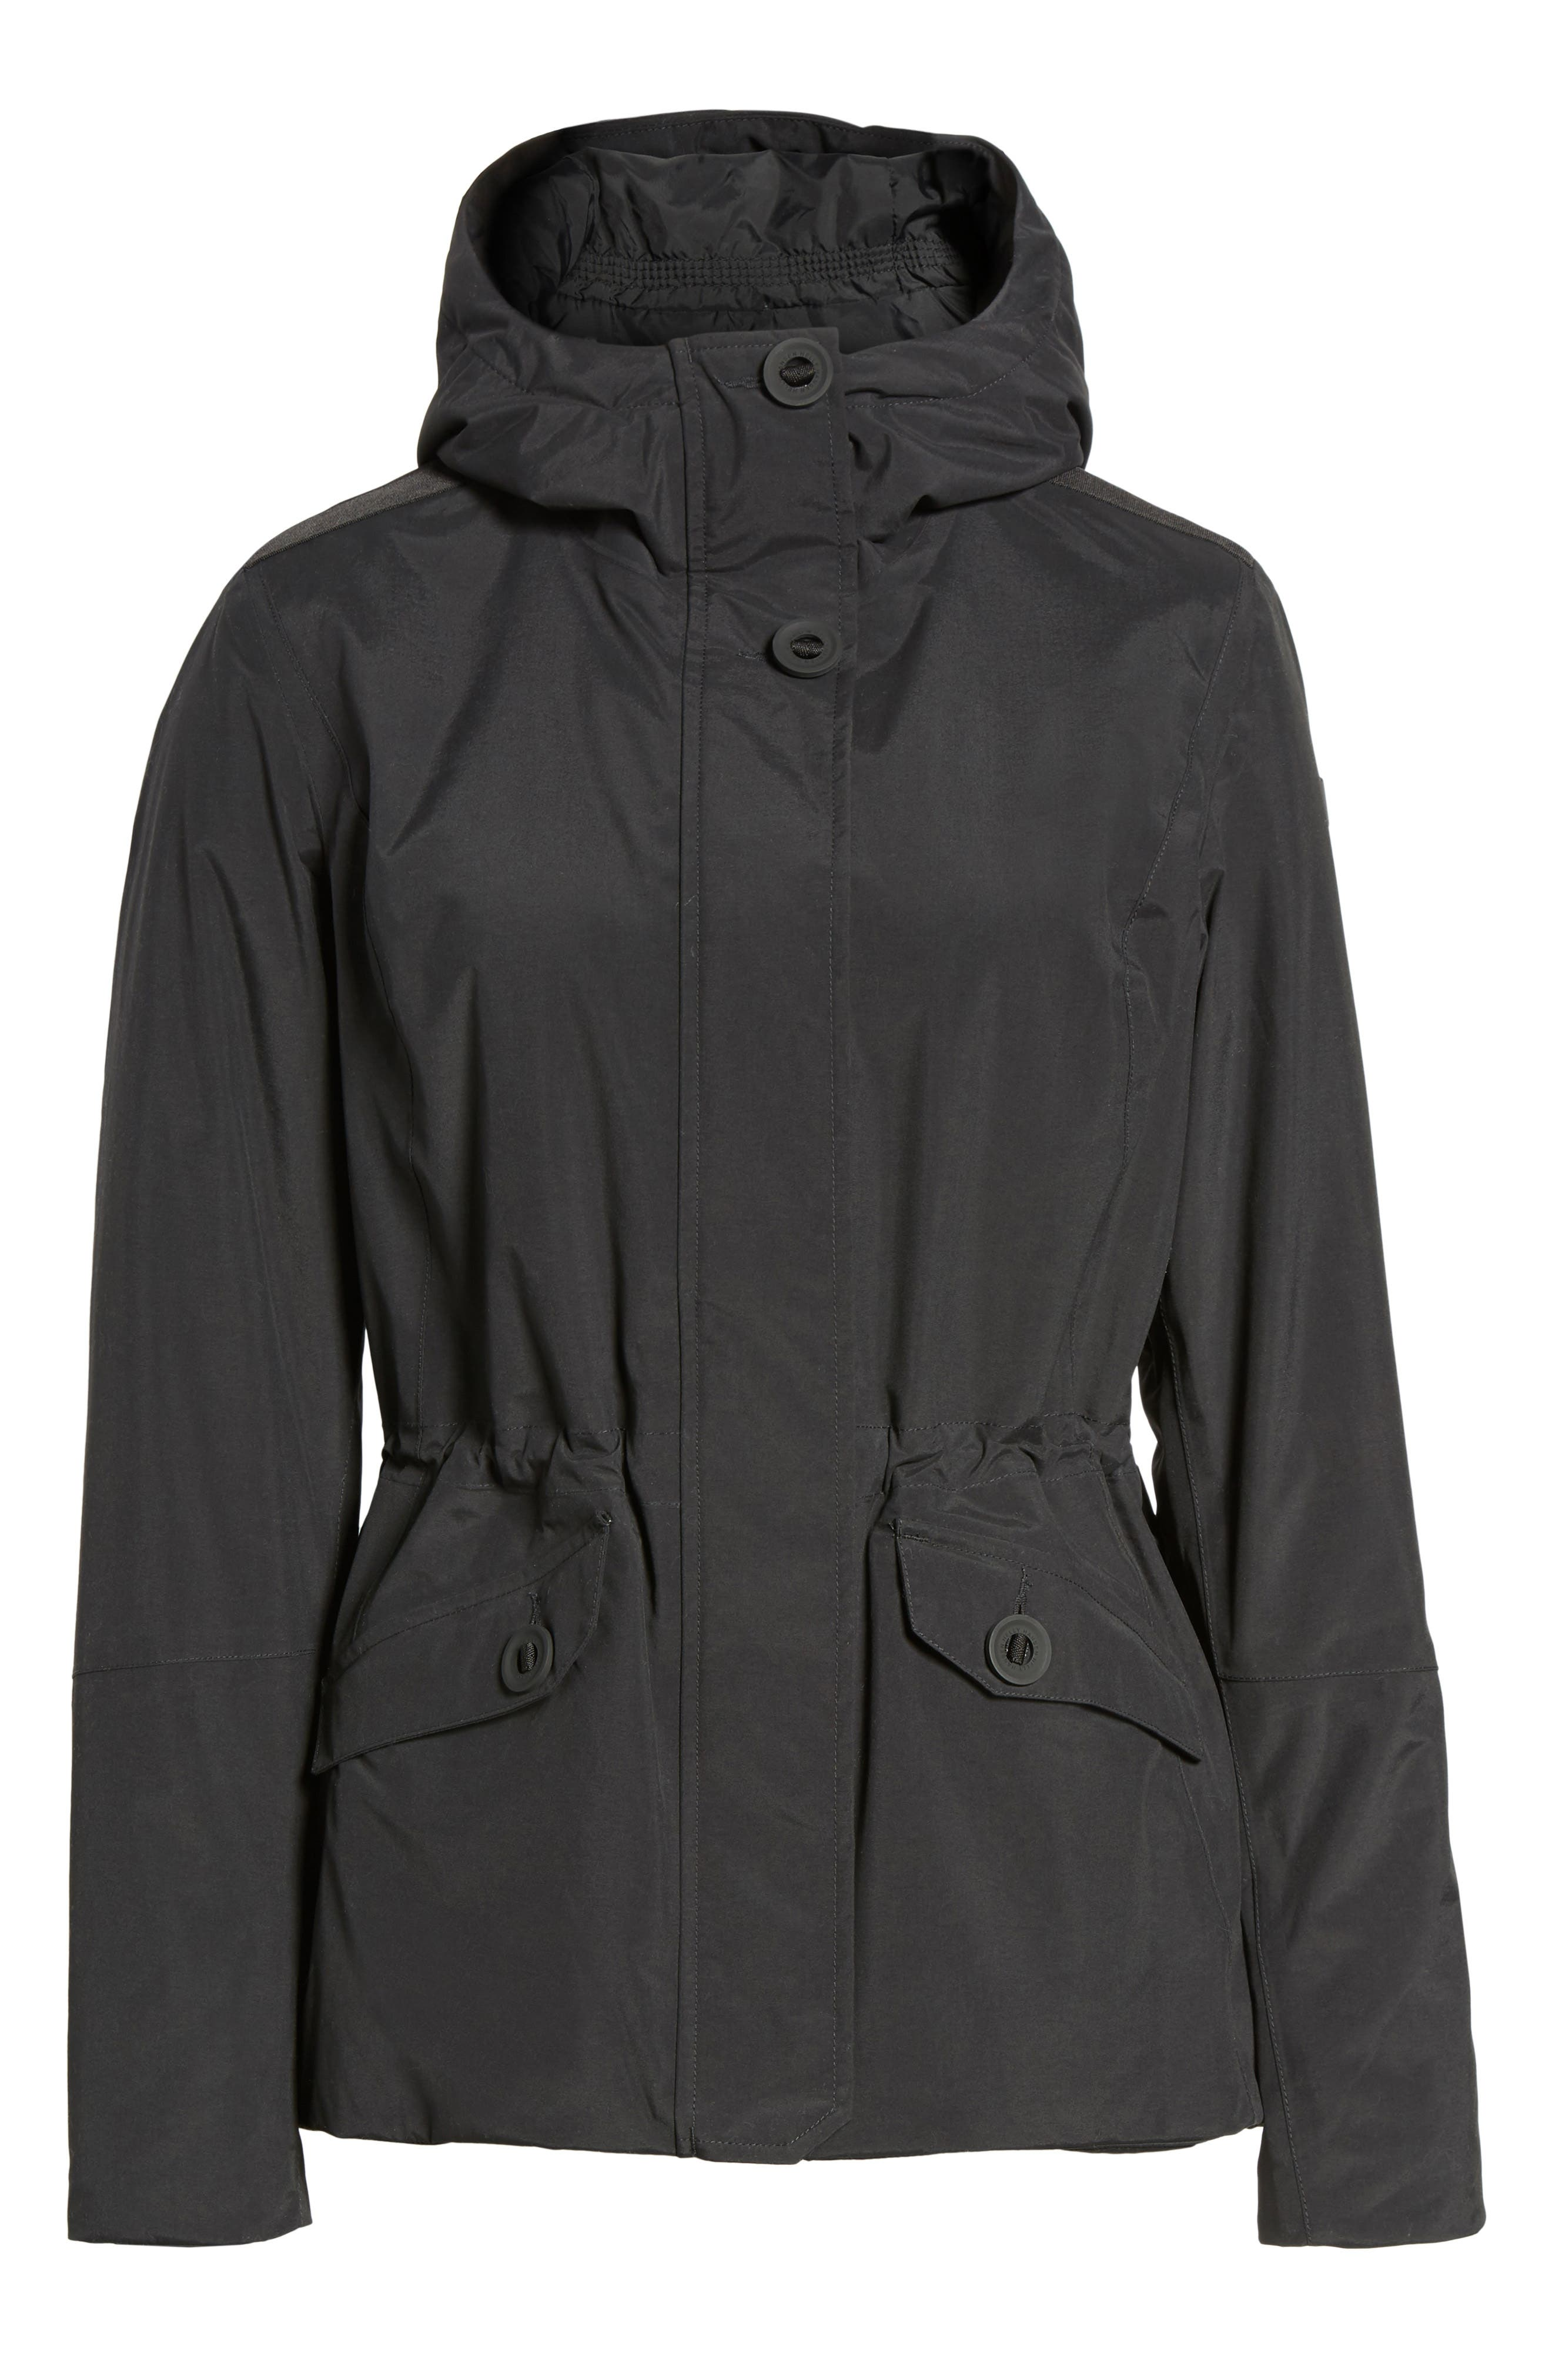 Donegal Waterproof PrimaLoft<sup>®</sup> Insulated Jacket,                             Alternate thumbnail 6, color,                             009